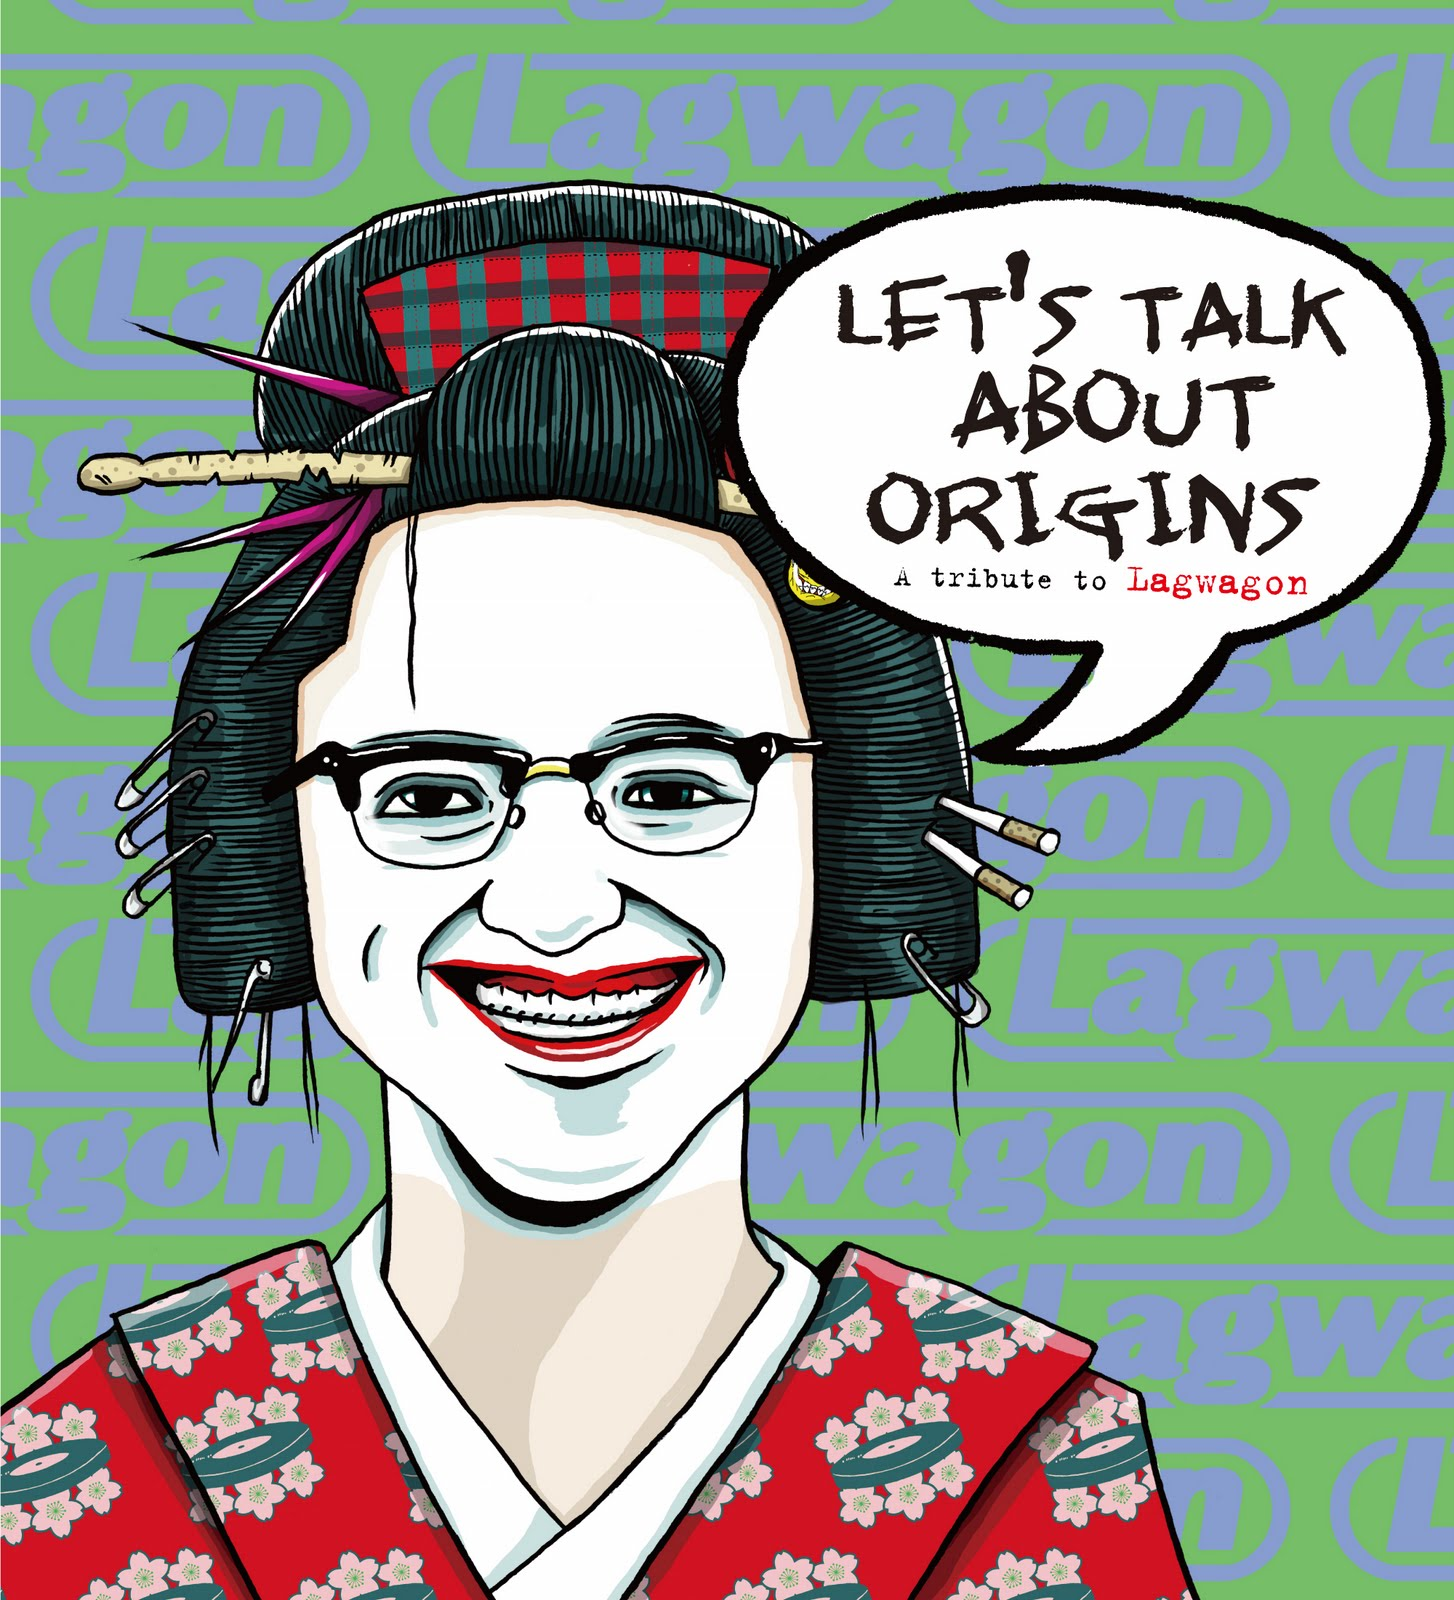 A tribute to Lagwagon - Let's Talk About Origins